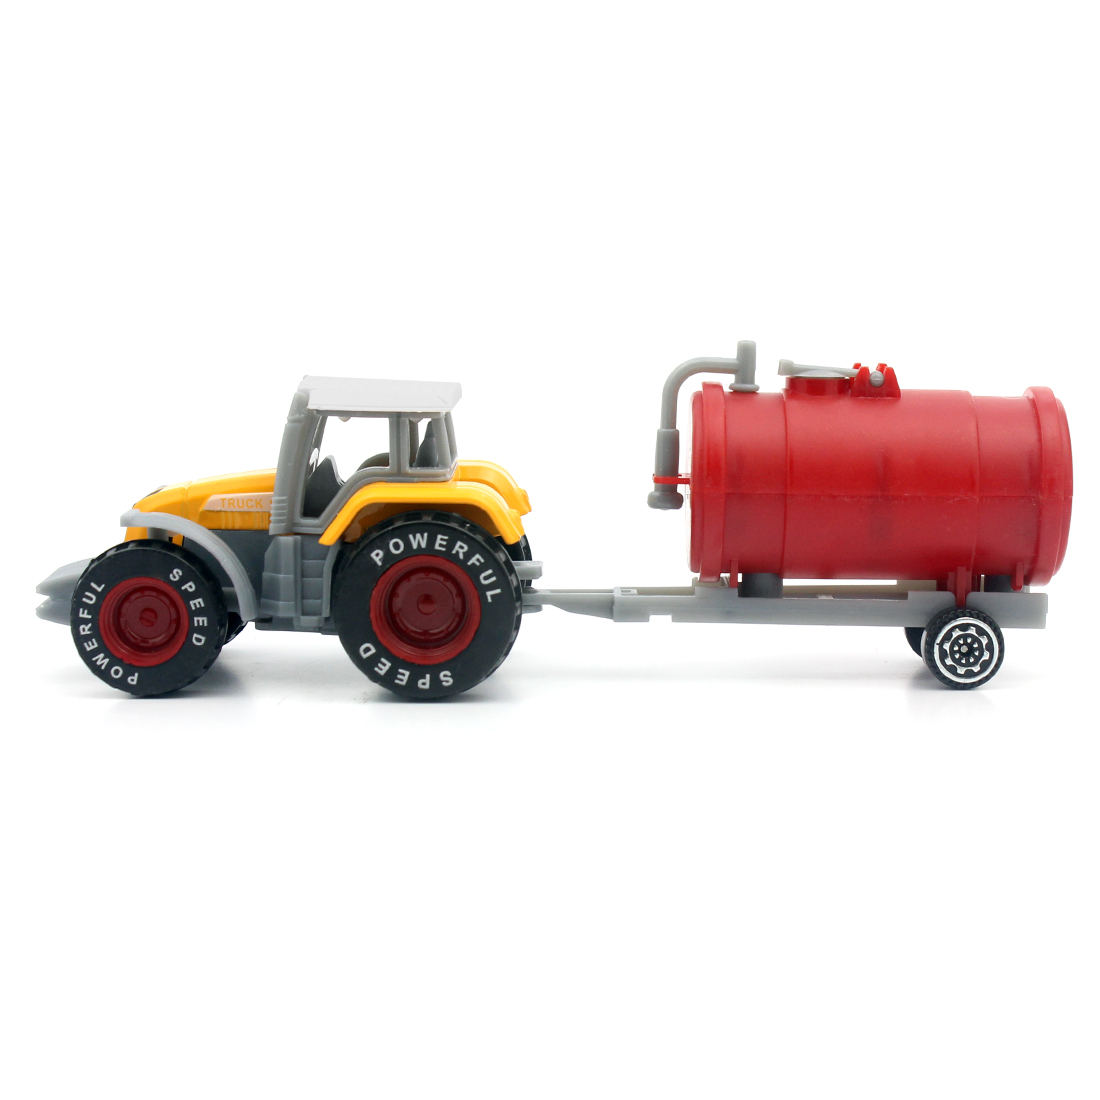 Mini Harvester Truck Farmer Farm Tractor Planting Machine Sprinkler Diecast Model Engineering Car Children's Toys for Boys